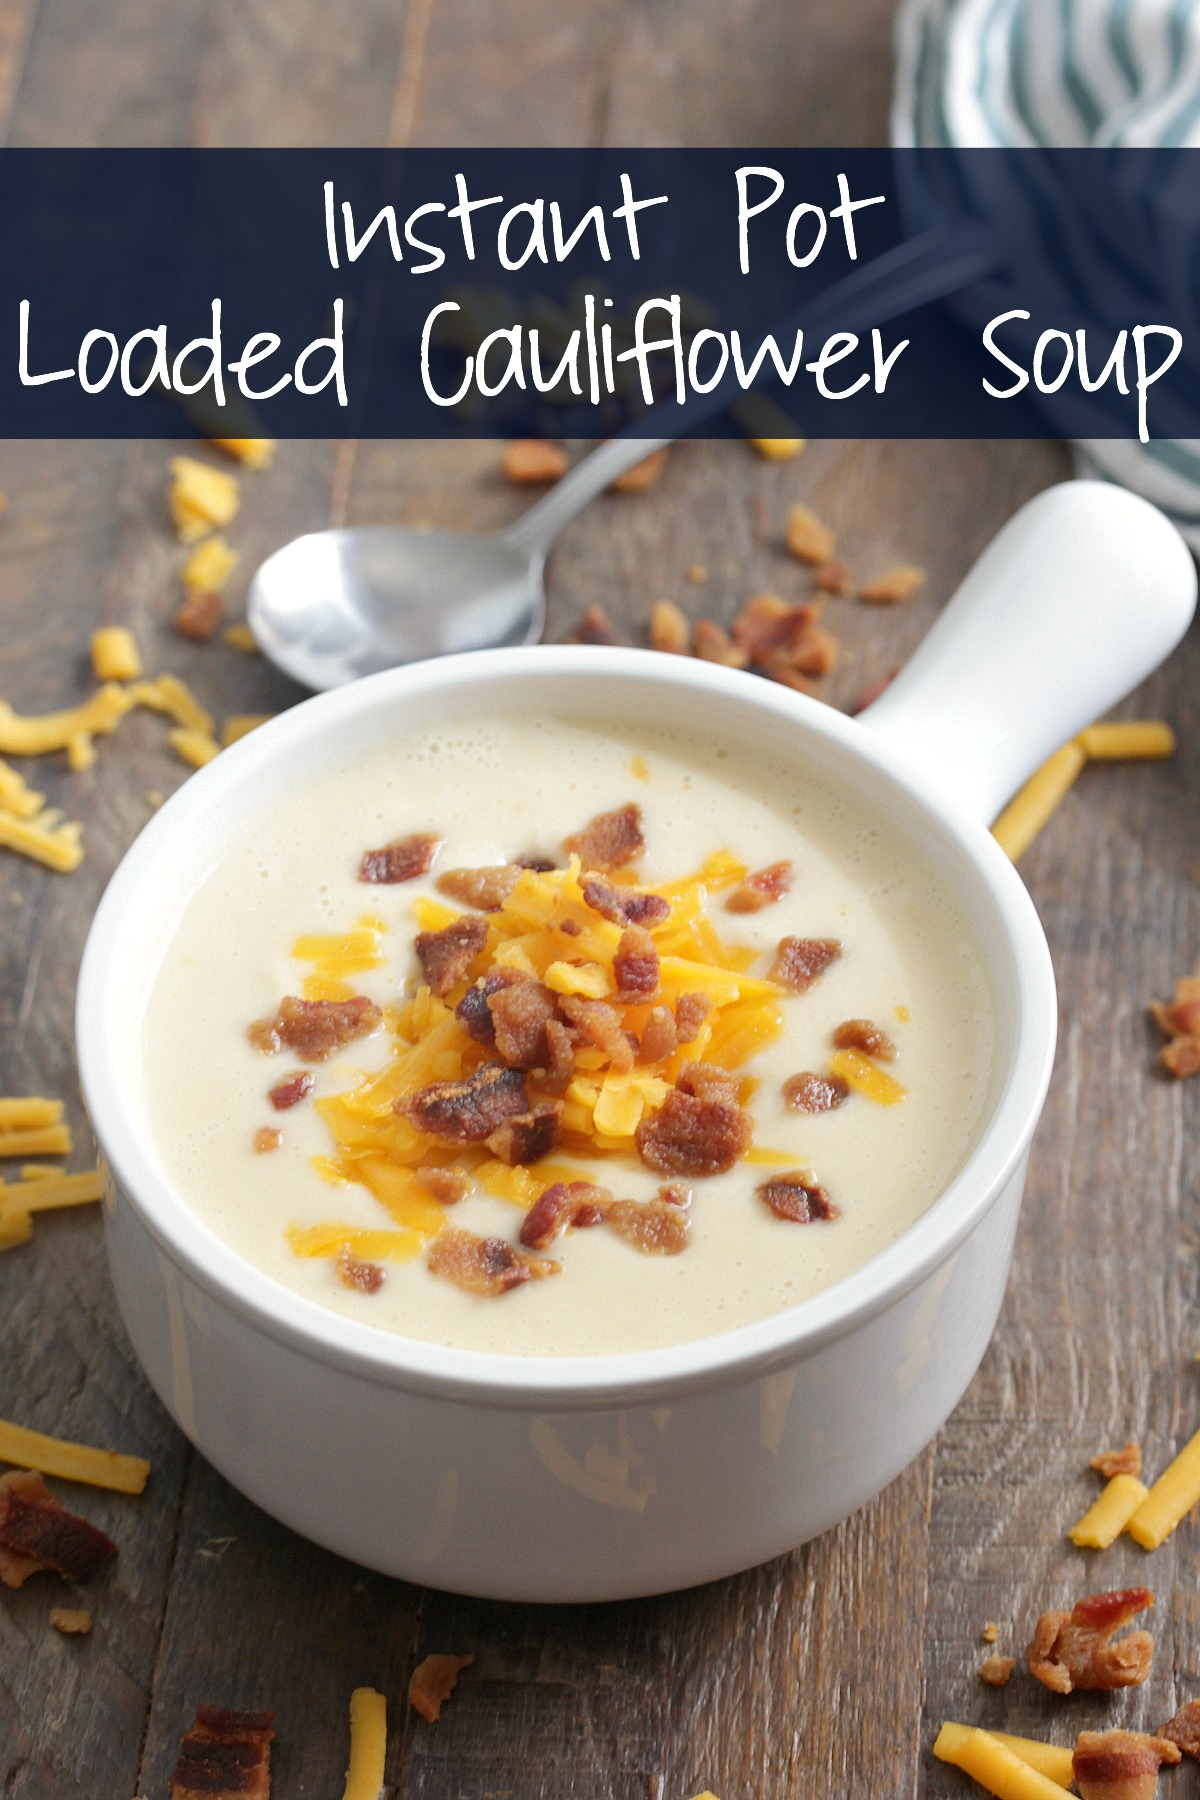 Instant Pot Loaded Cauliflower Soup